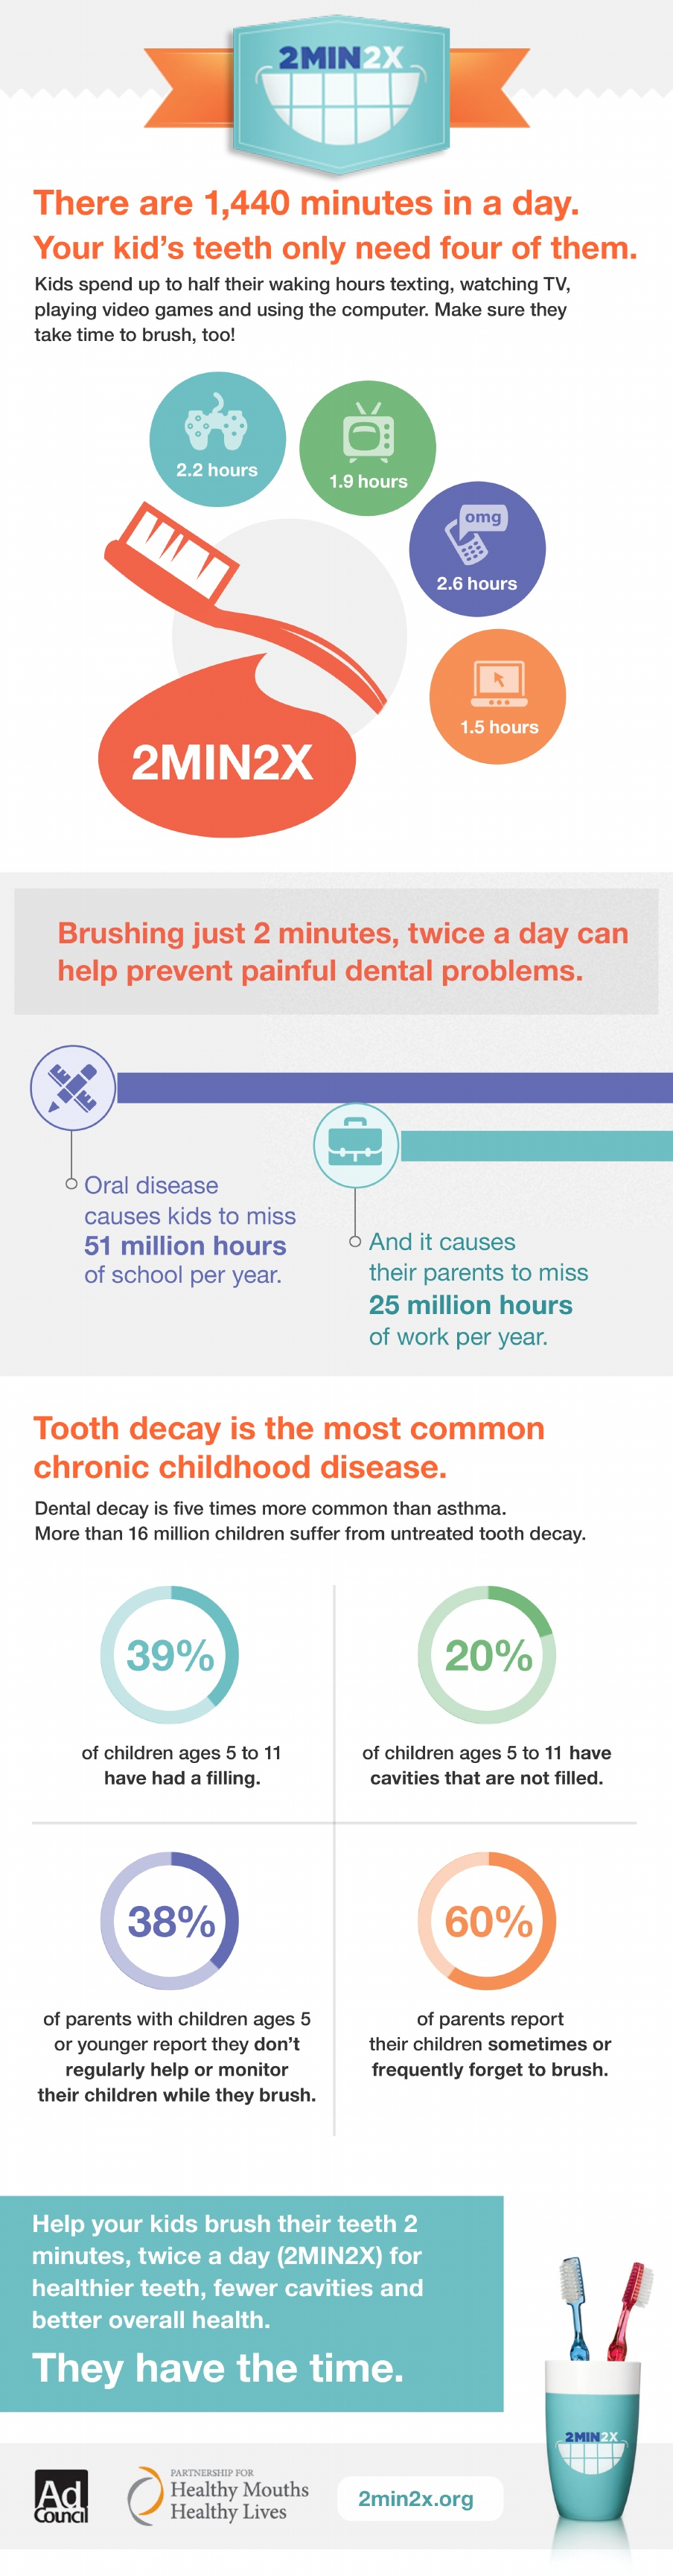 Parents: Remember to encourage your kid to brush daily for 2